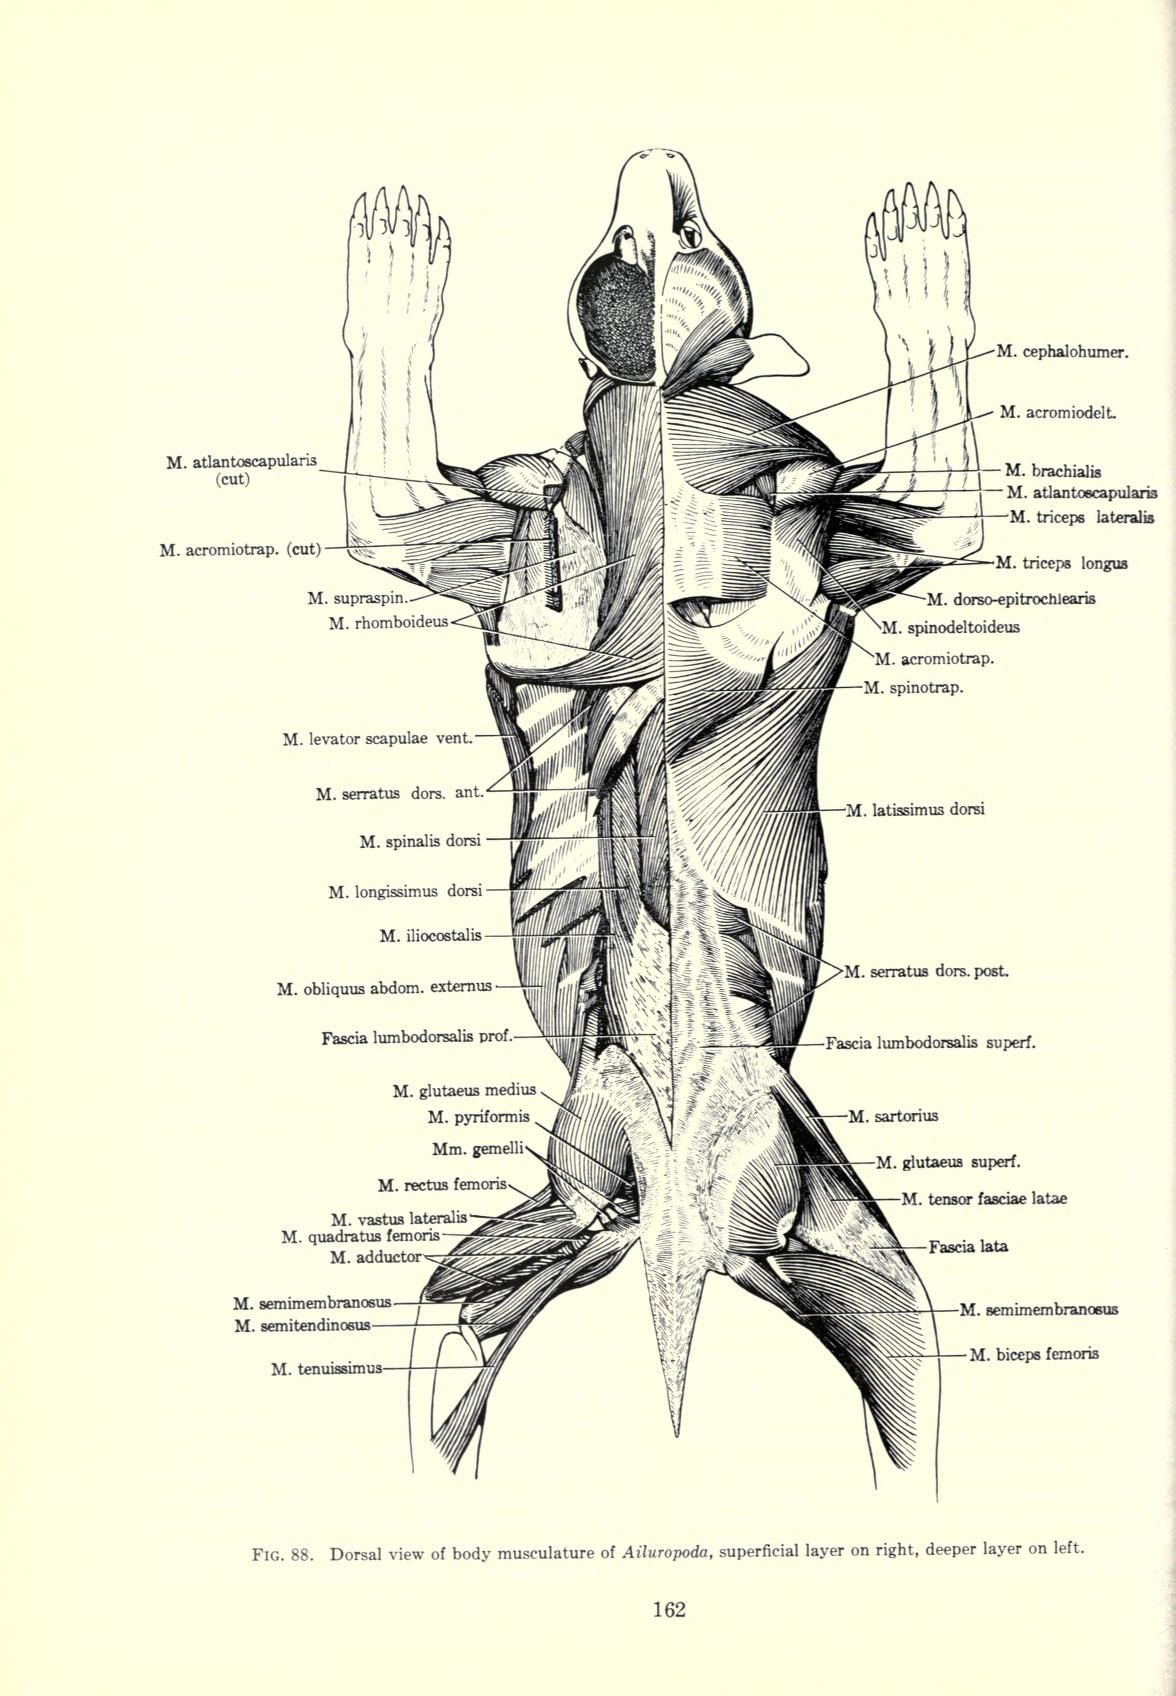 snow leopard anatomy diagram muscular system labeled giant panda illustrations pinterest